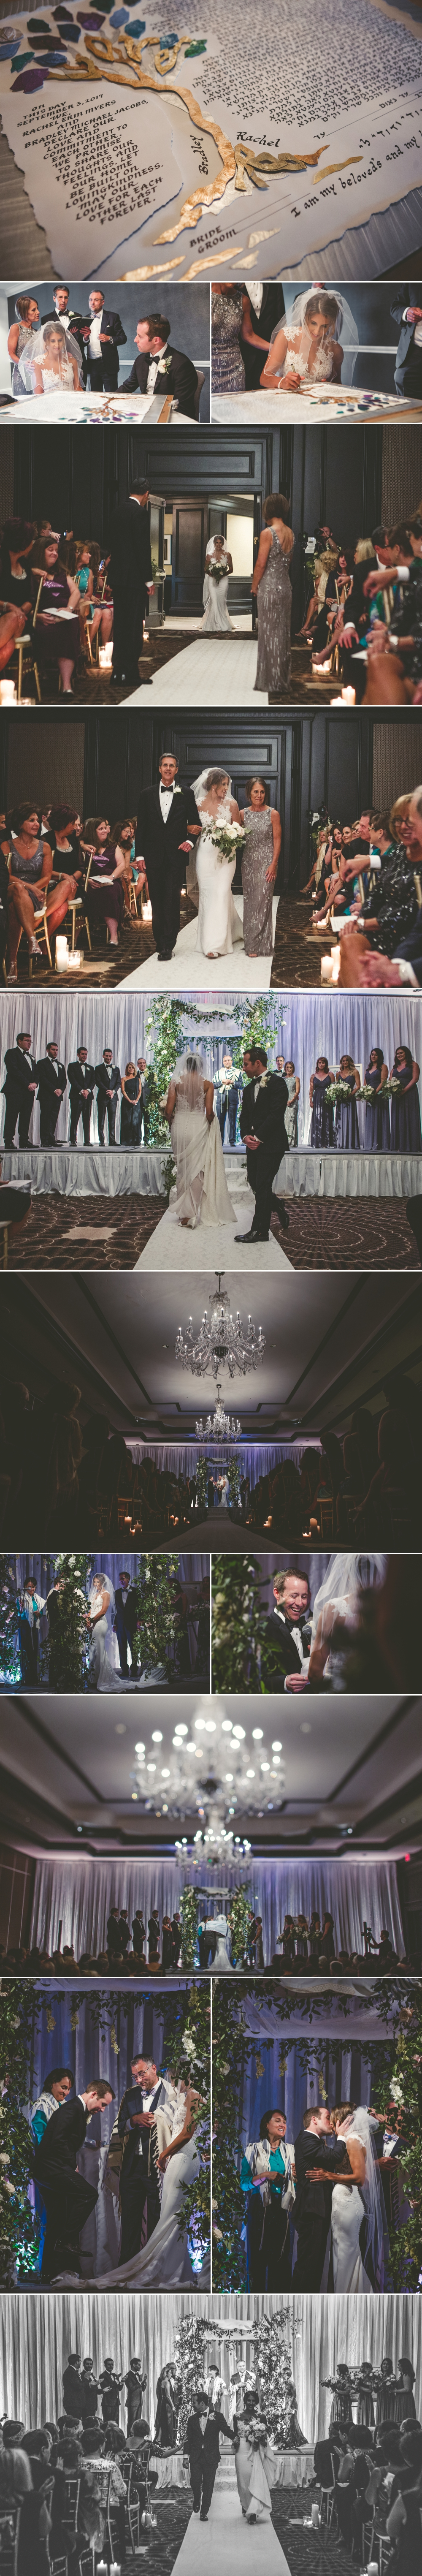 jason_domingues_photography_best_kansas_city_wedding_photographer_jewish_intercontinental_hotel_0004.JPG